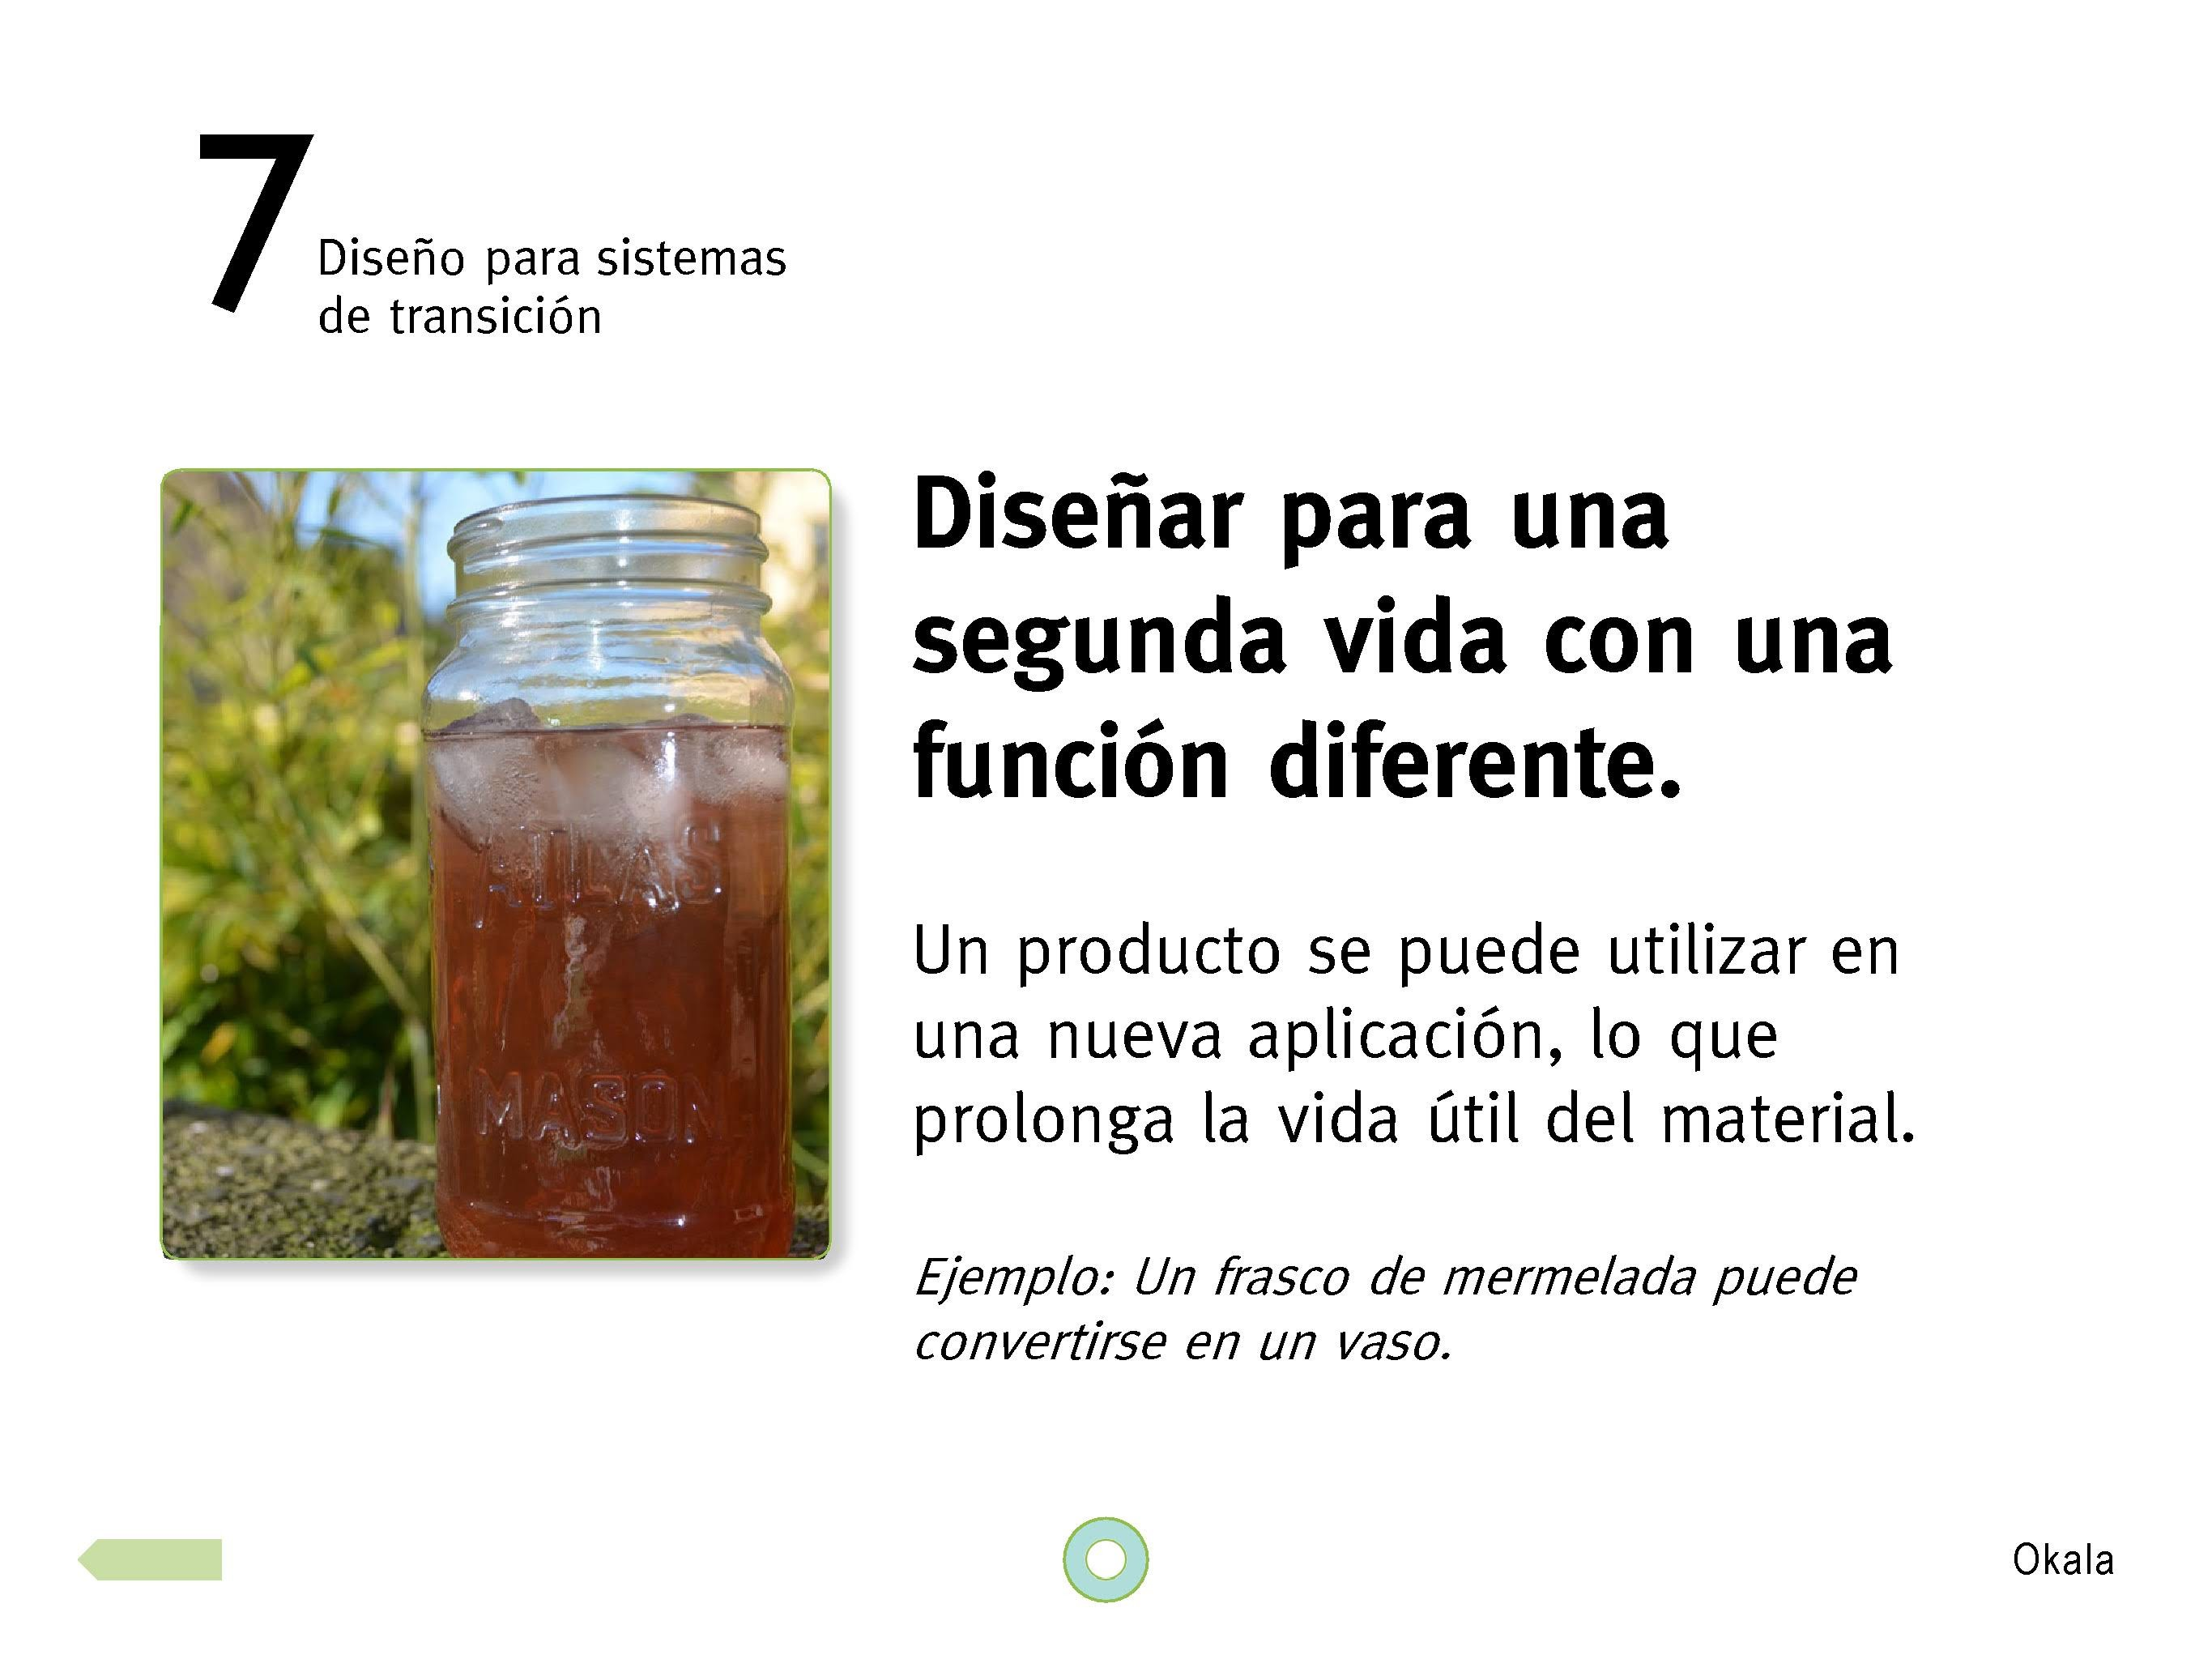 okala-ecodesign-strategy-guide-2012-spanish.new_page_39-1